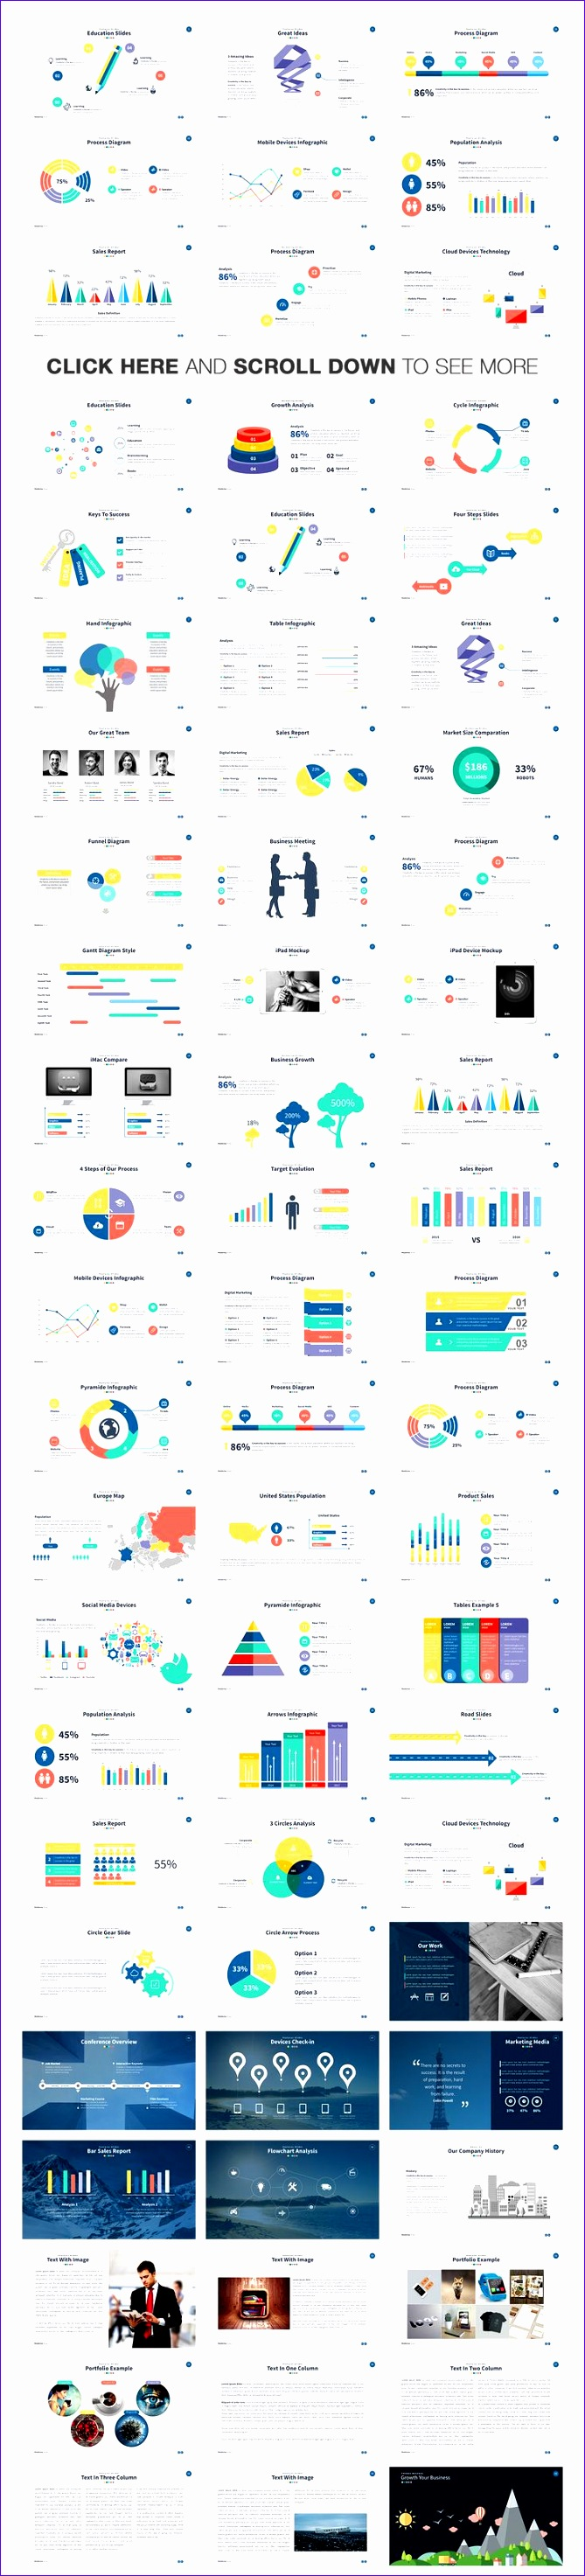 Dynamic Dashboard Template In Excel C8fog Lovely Best 25 Excel Dashboard Templates Ideas On Pinterest